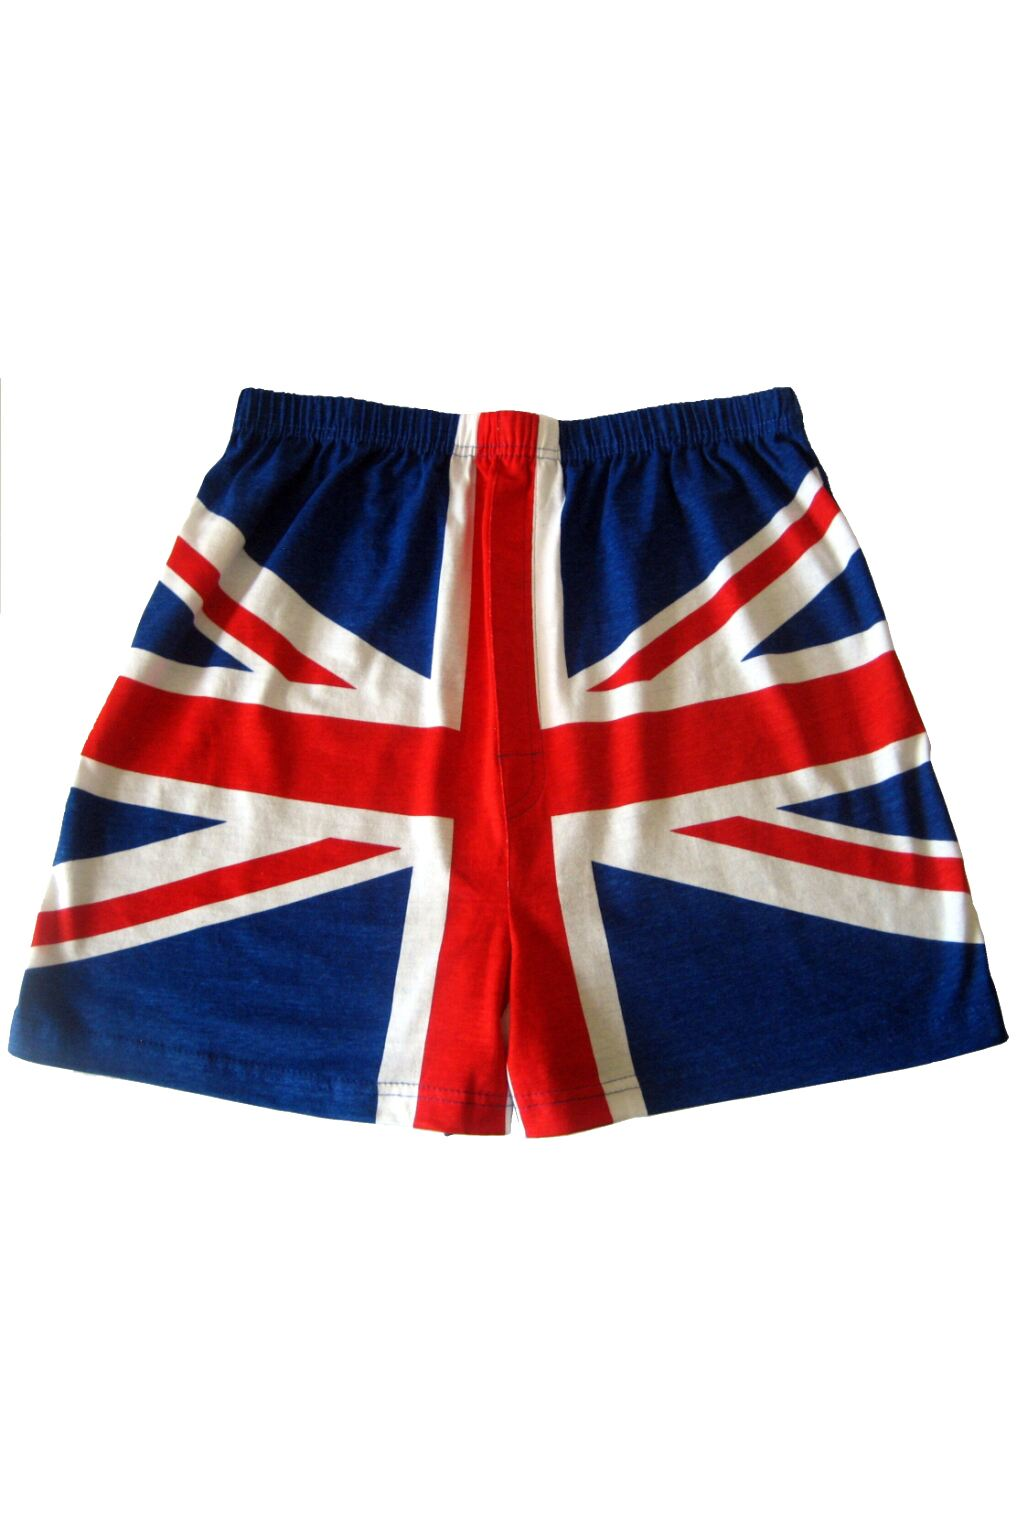 Image of 1 Pack Blue / Red Magic Boxer Shorts In Union Jack Pattern Men's Small - SOCKSHOP